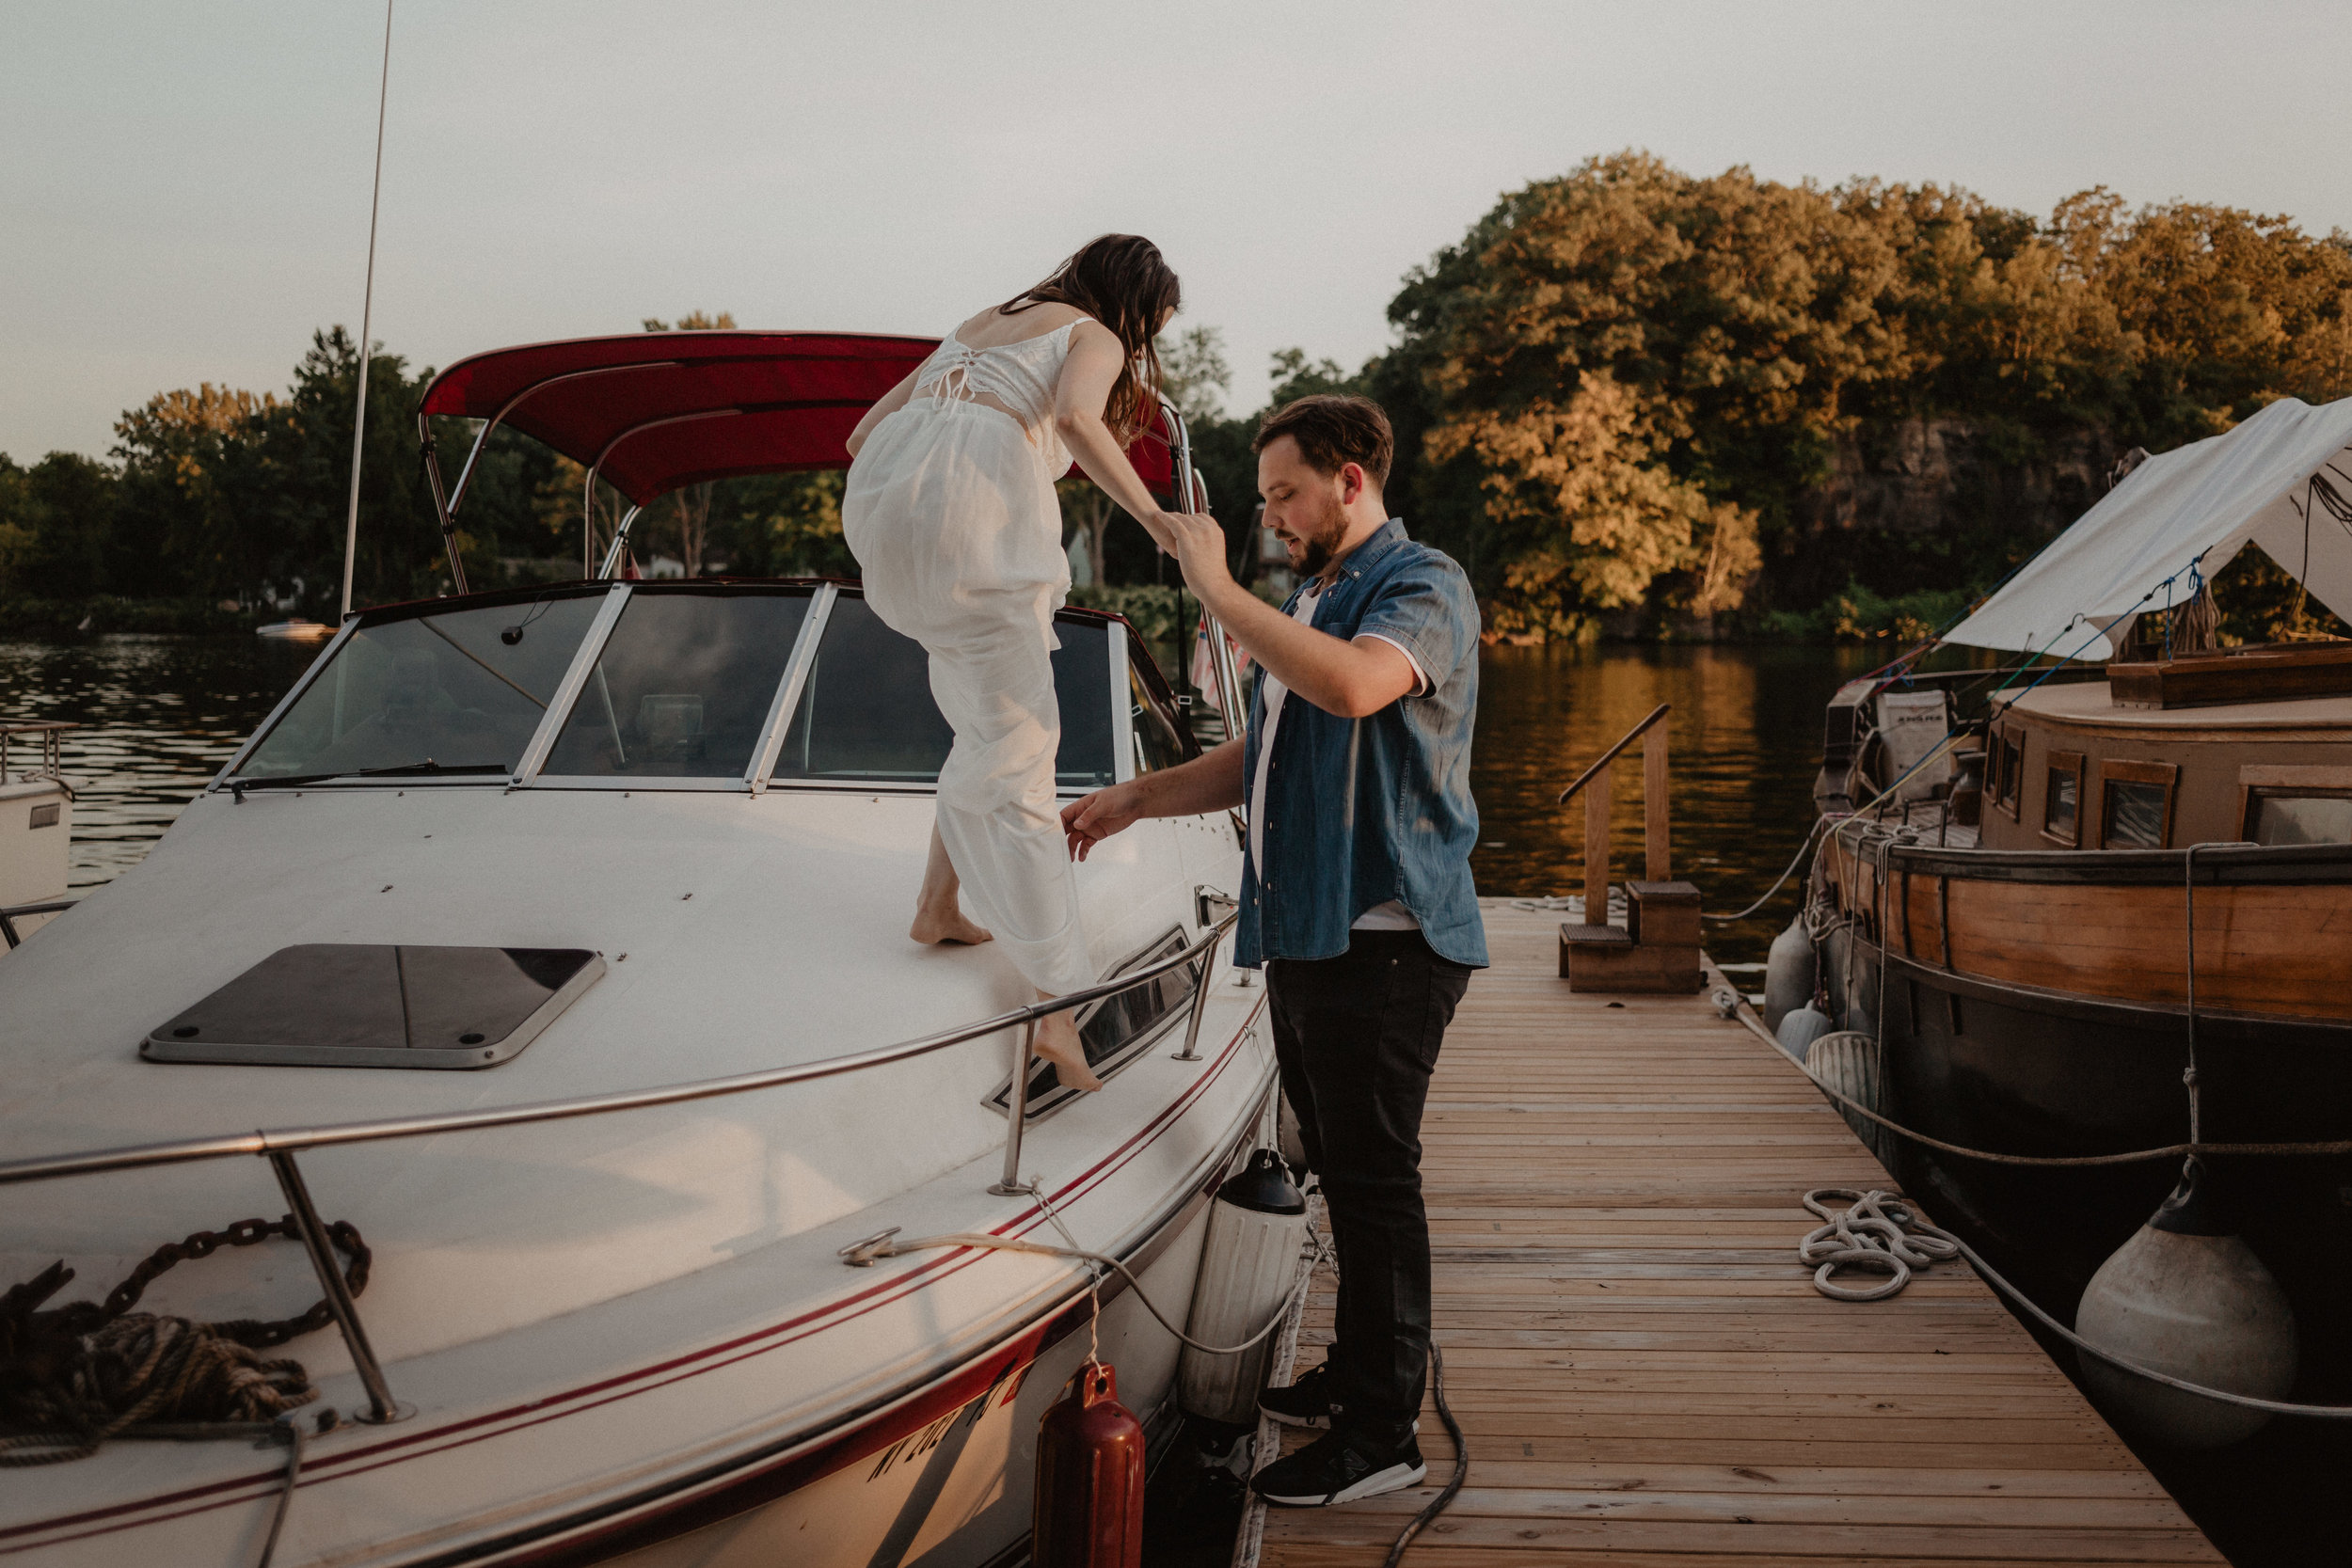 schenectady-yacht-club-engagement-31.jpg